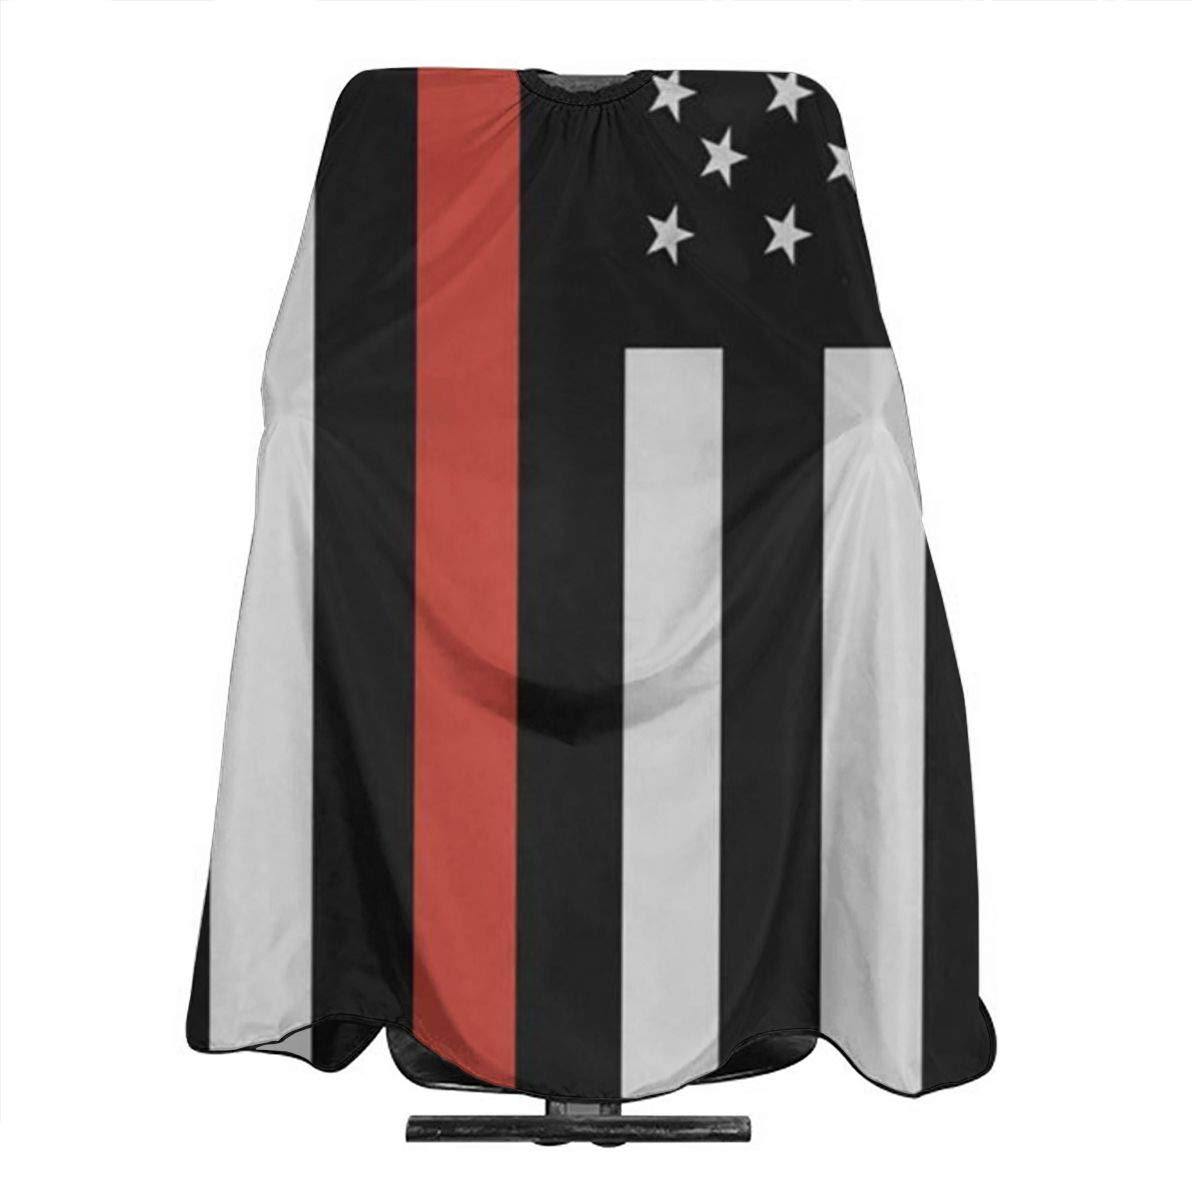 Professional Barber Cape Salon Hair Styling Cutting Haircut Aprons Red Black Thin Line American Firefighter Flag Capes For Proof Hairdresser Coloring Perming Shampoo Chemical 55